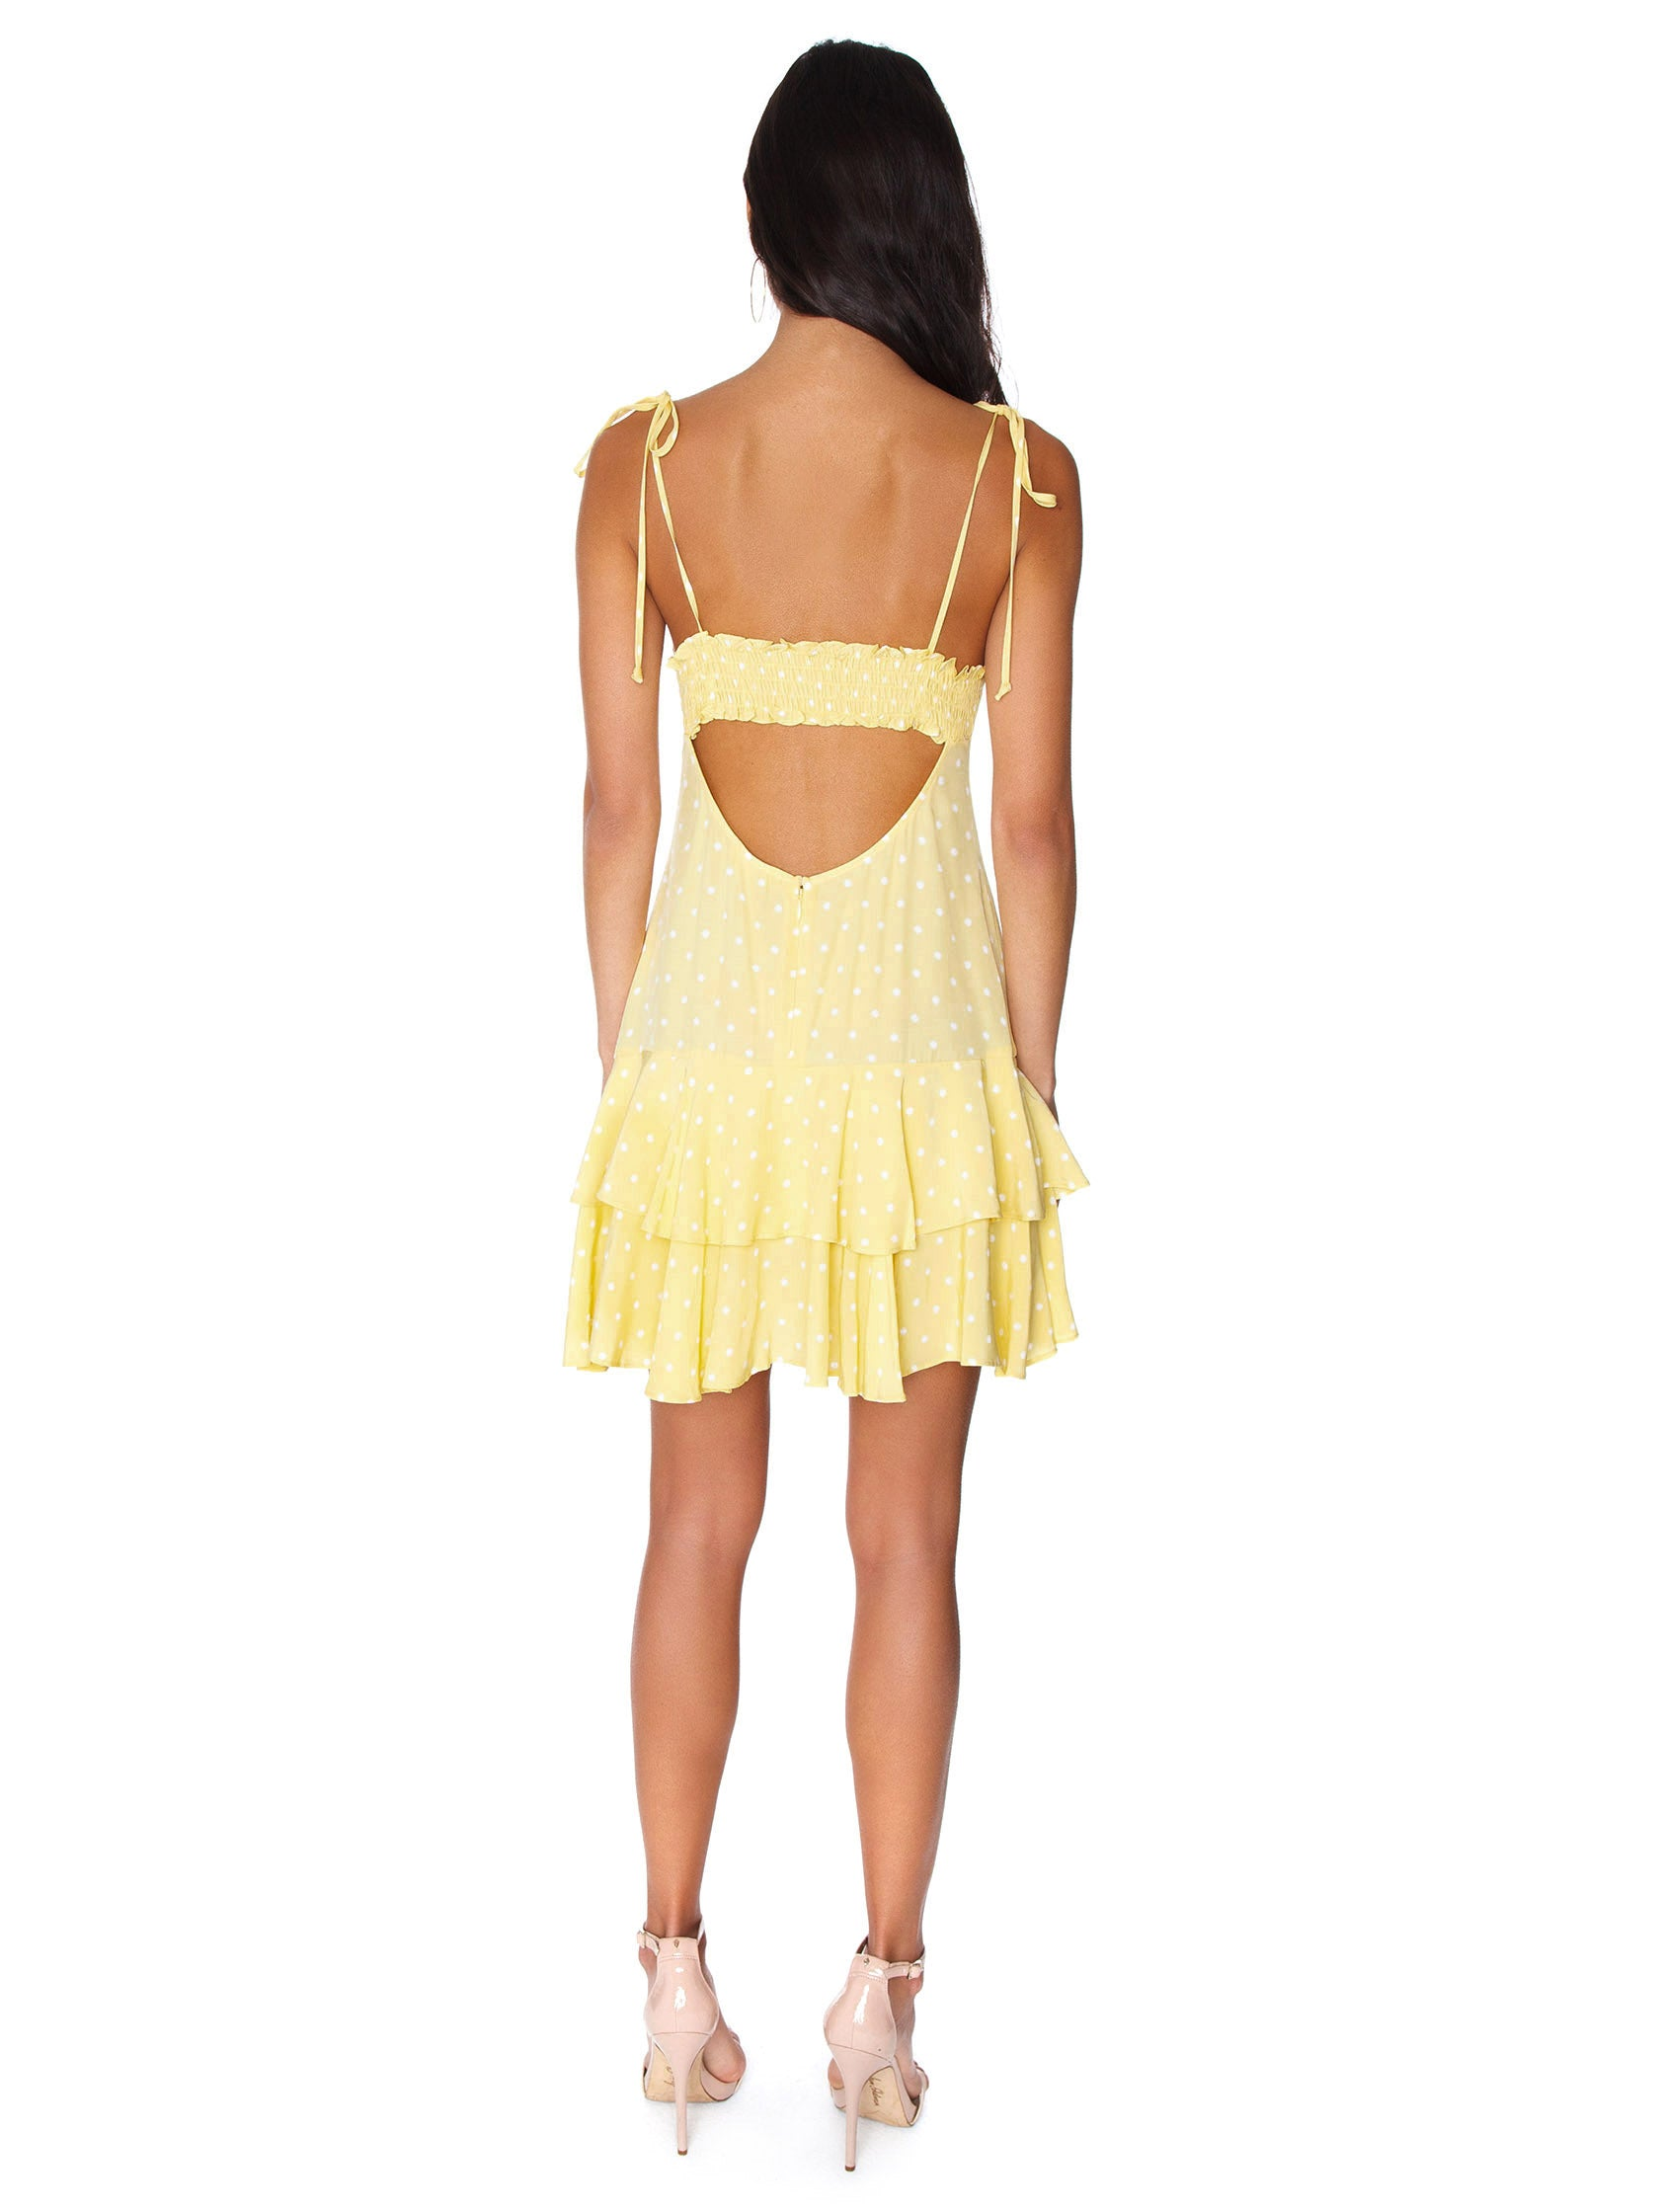 Women wearing a dress rental from For Love & Lemons called Limoncello Tiered Ruffle Dress